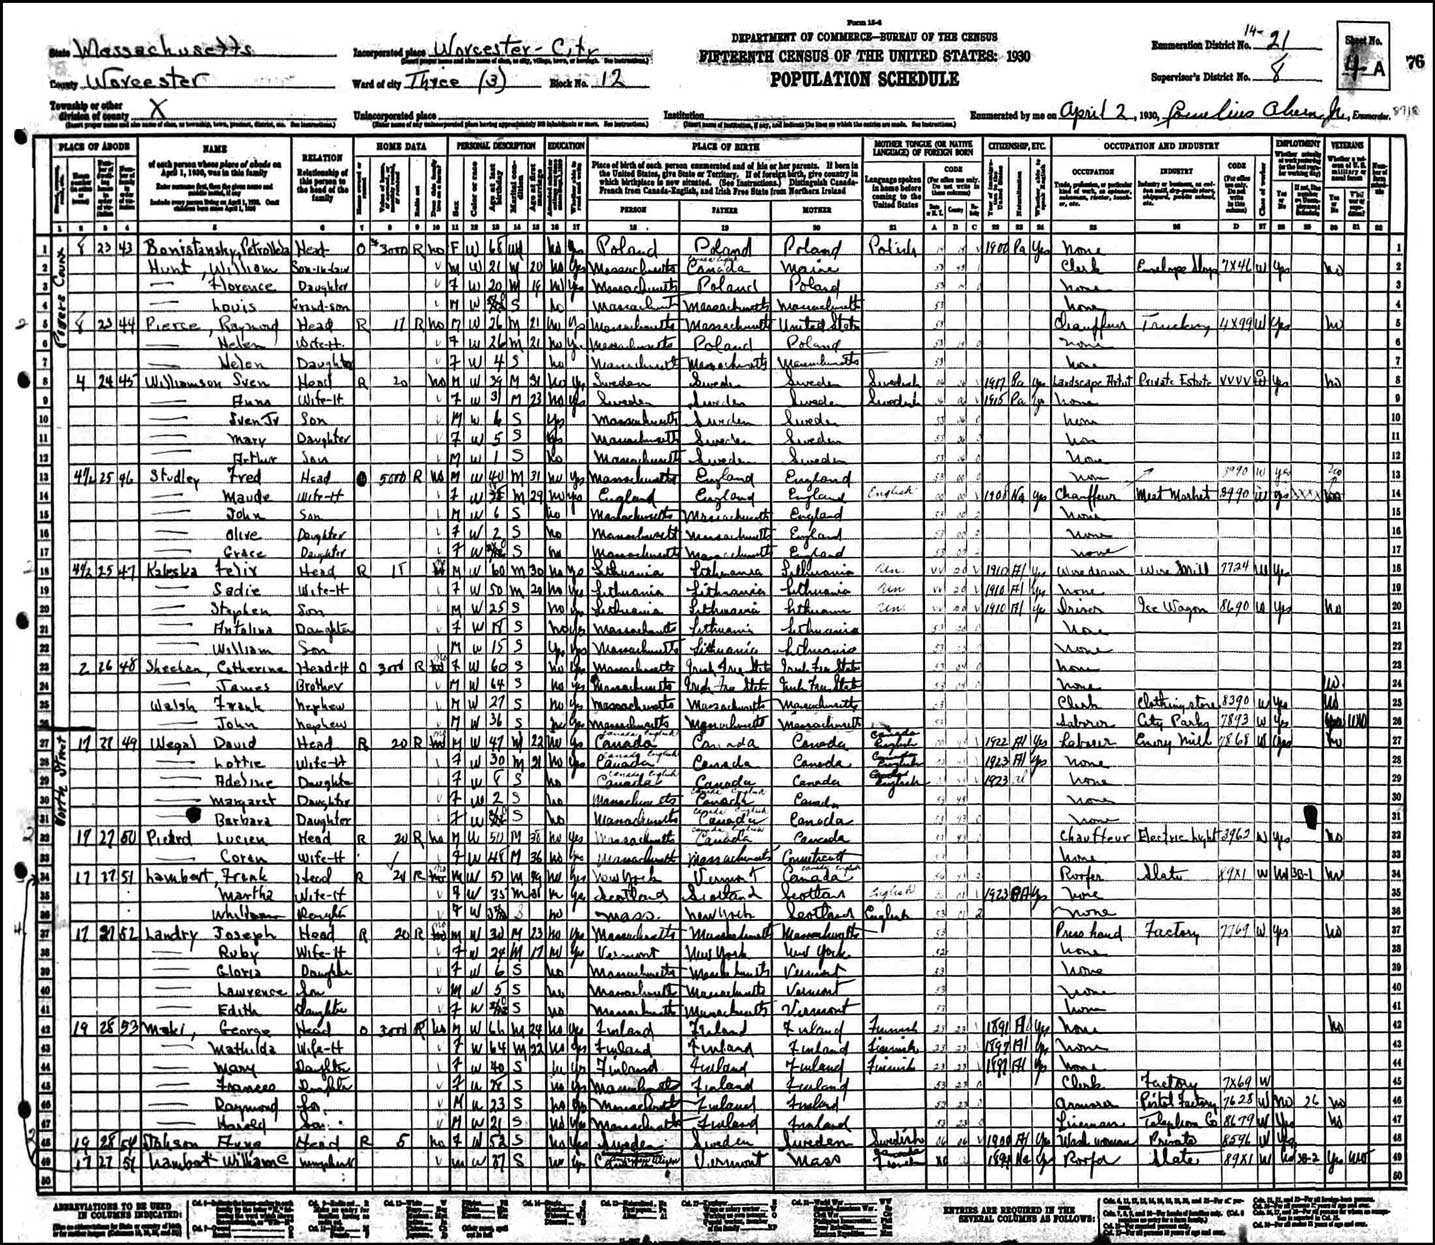 US Federal Census Record for the Family of Adam Bonislawski - 1920